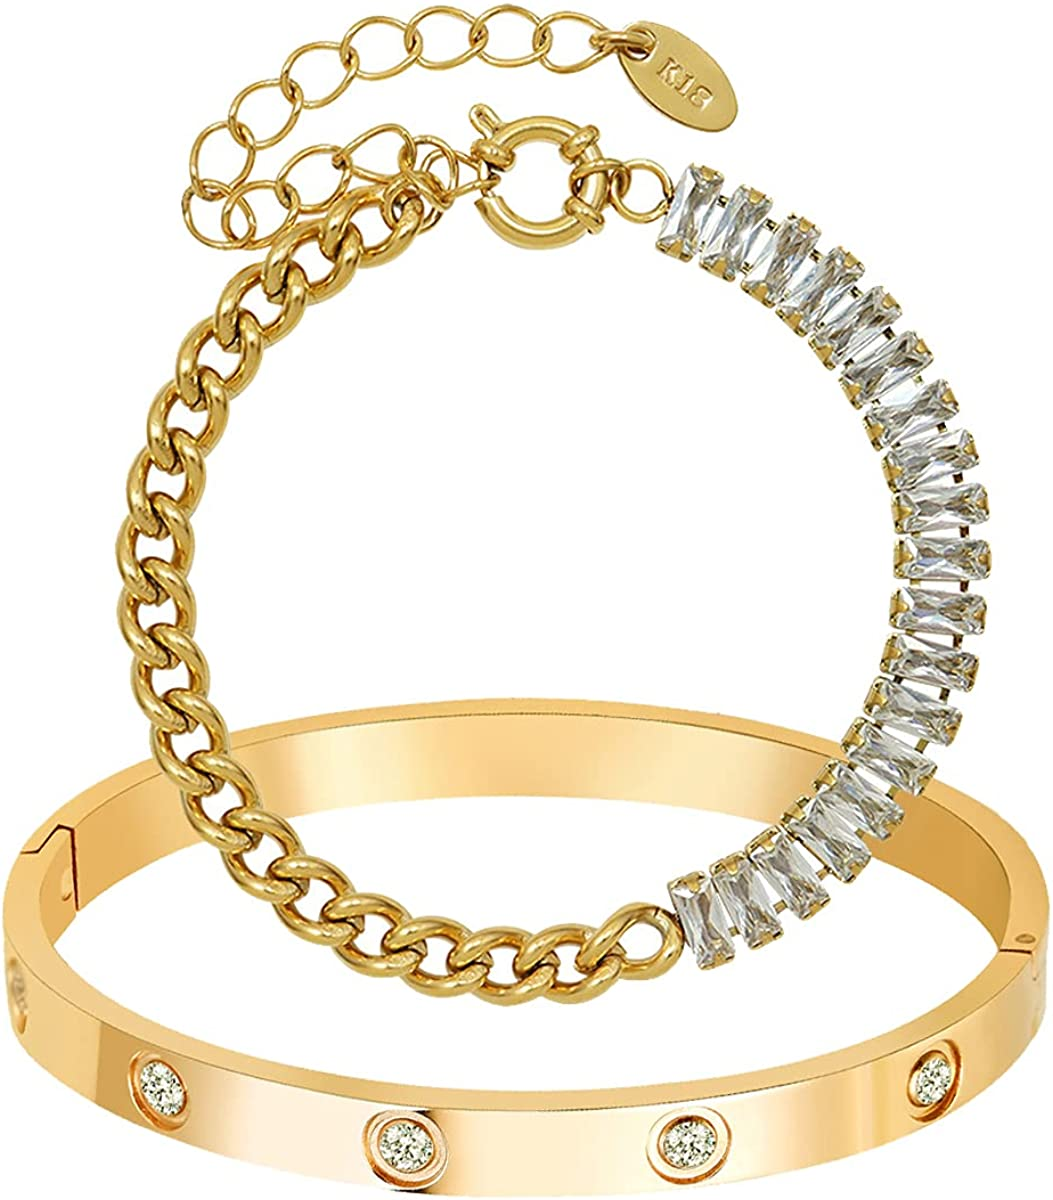 AD Jewelry 18 K Gold Plated Love Bangle Bracelet 2 PCS Set CZ Stone Stainless Steel Bangle for Women